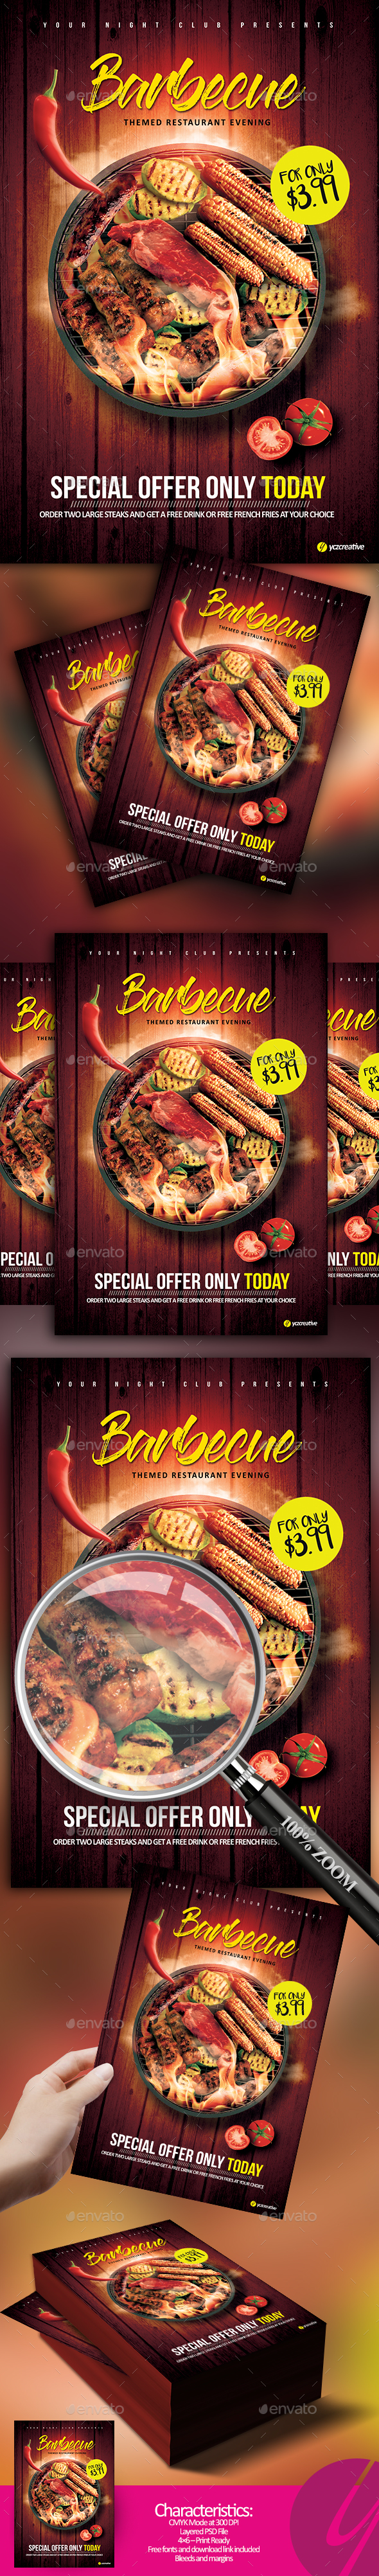 Barbecue Restaurant Flyer - Restaurant Flyers